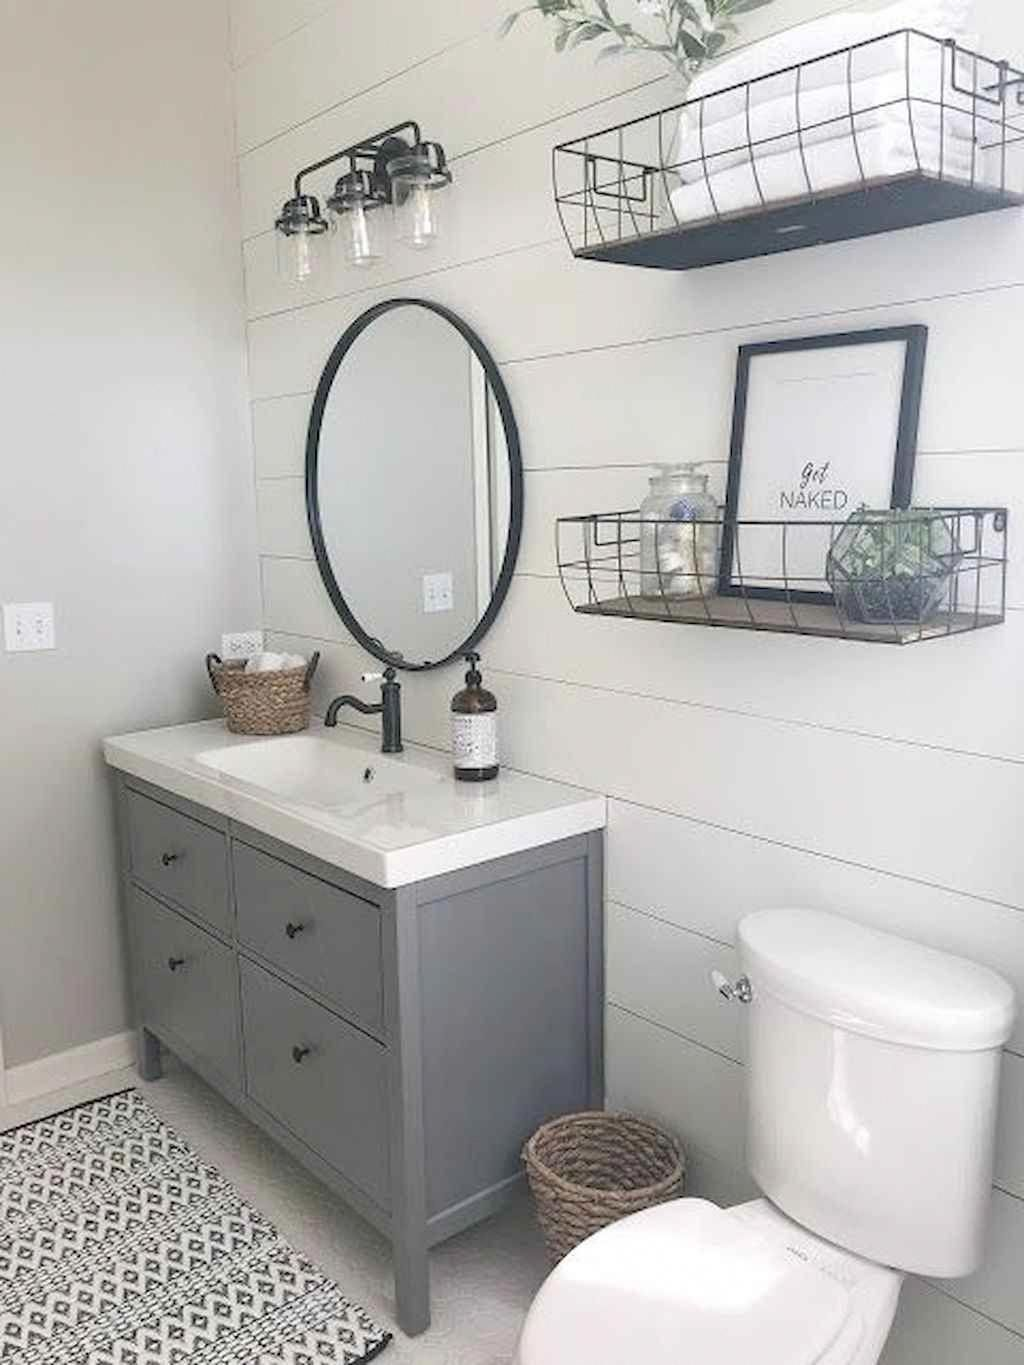 beautiful bathroom decor ideas modern farmhouse rustic on beautiful farmhouse bathroom shower decor ideas and remodel an extraordinary design id=69985